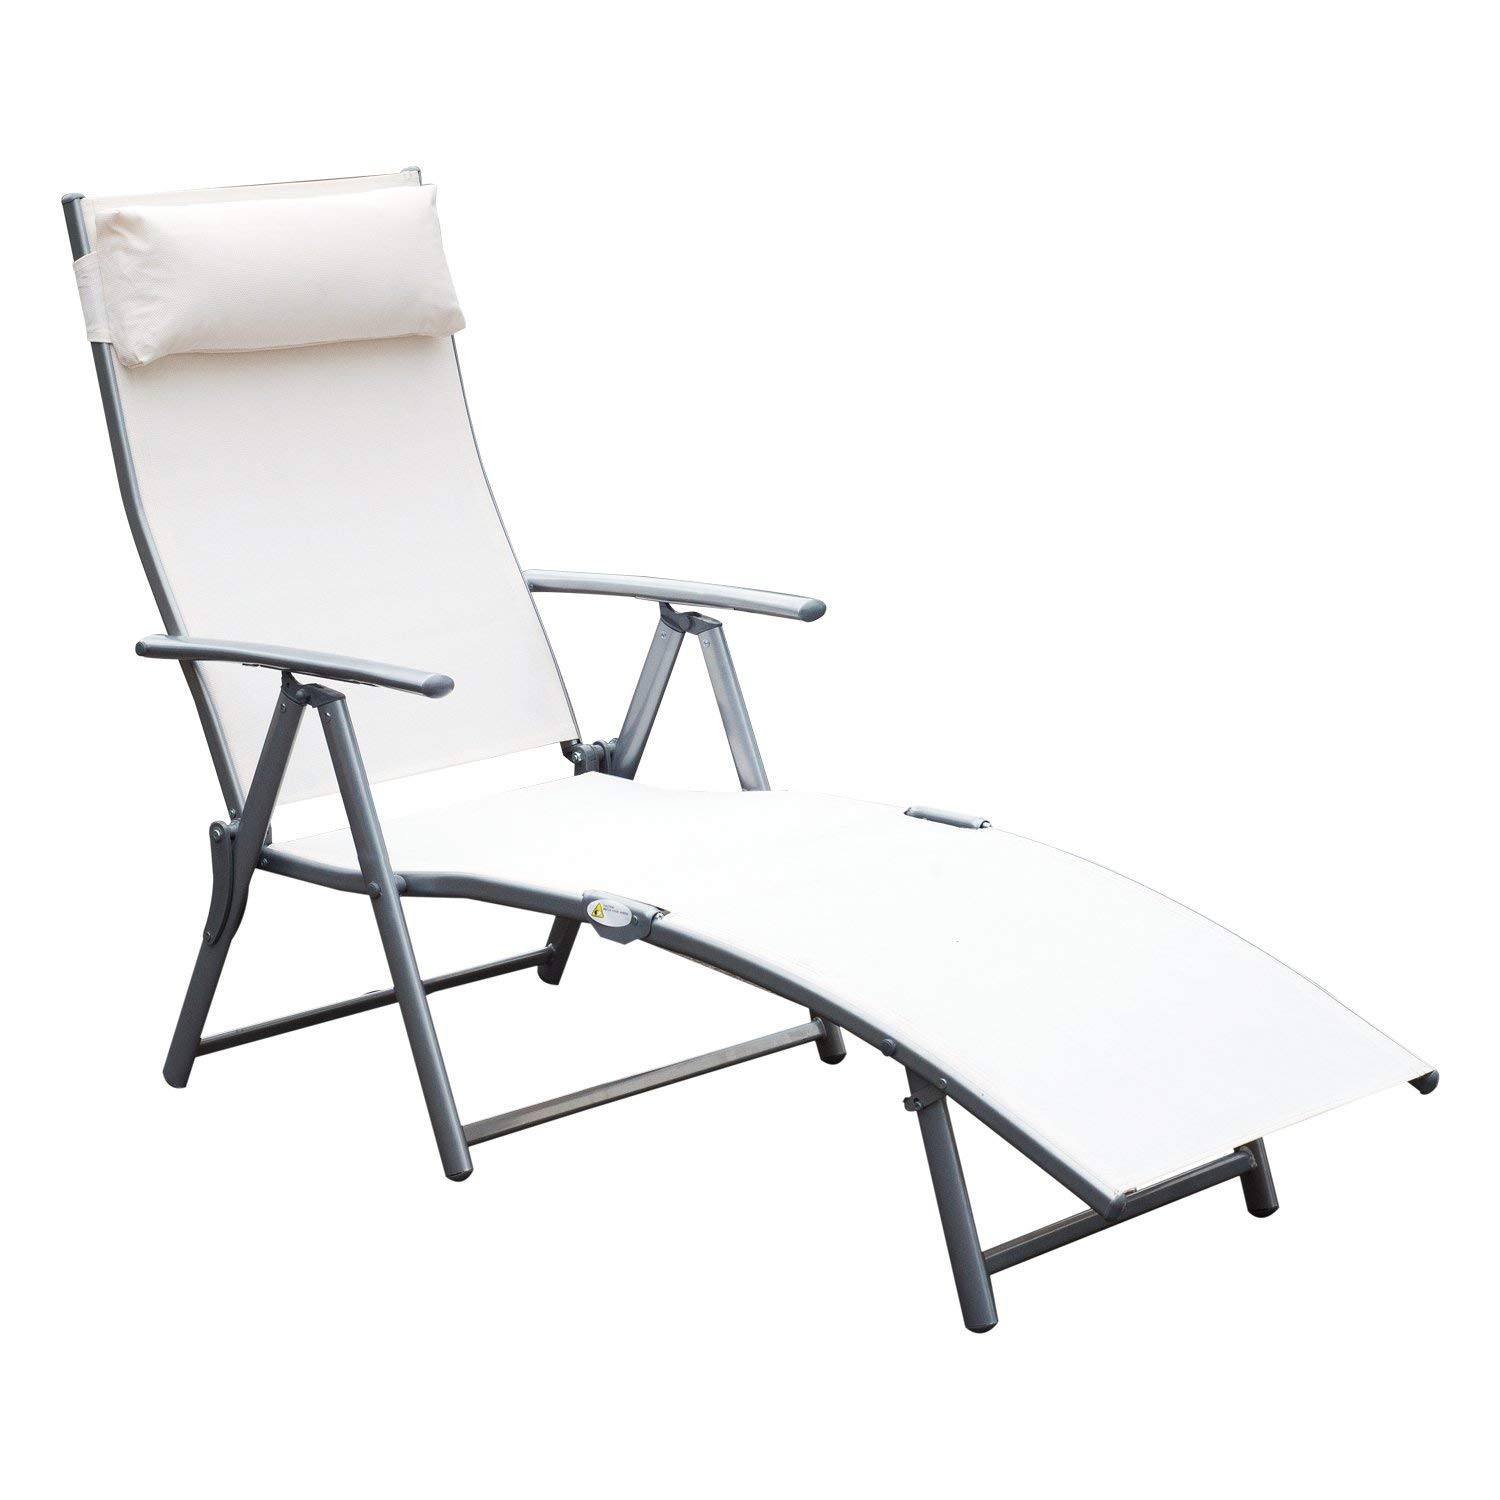 Get Quotations Outsunny Sling Fabric Folding Patio Reclining Outdoor Deck Chaise Lounge Chair With Cushion Cream White